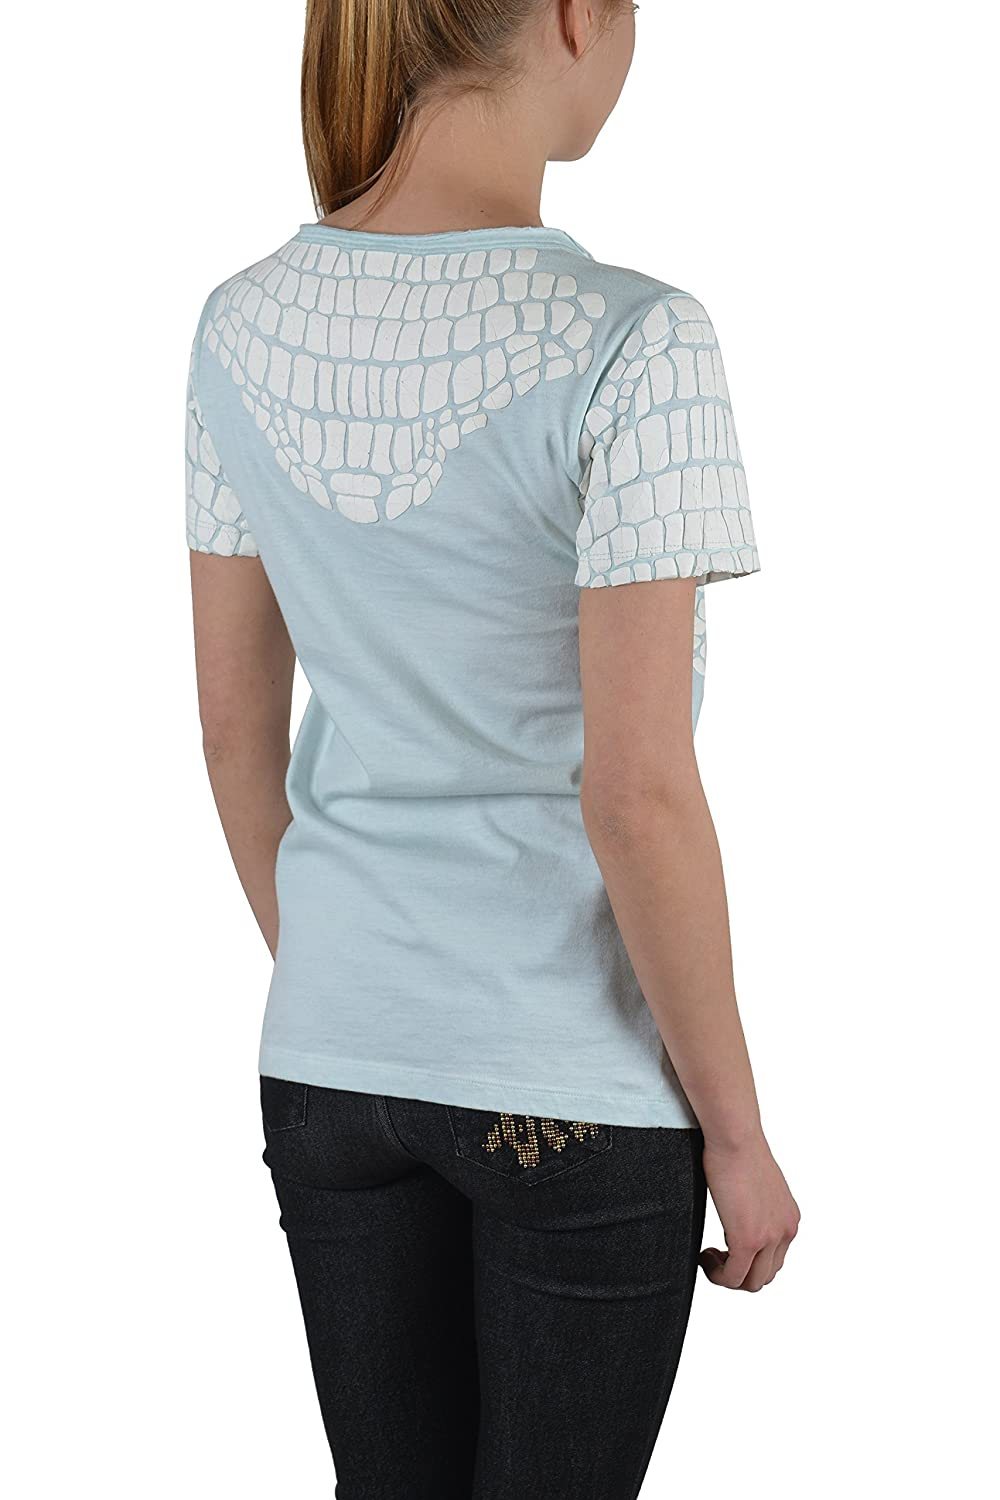 Just Cavalli Light Blue Distressed Short Sleeves Women's Blouse Top US S IT 40